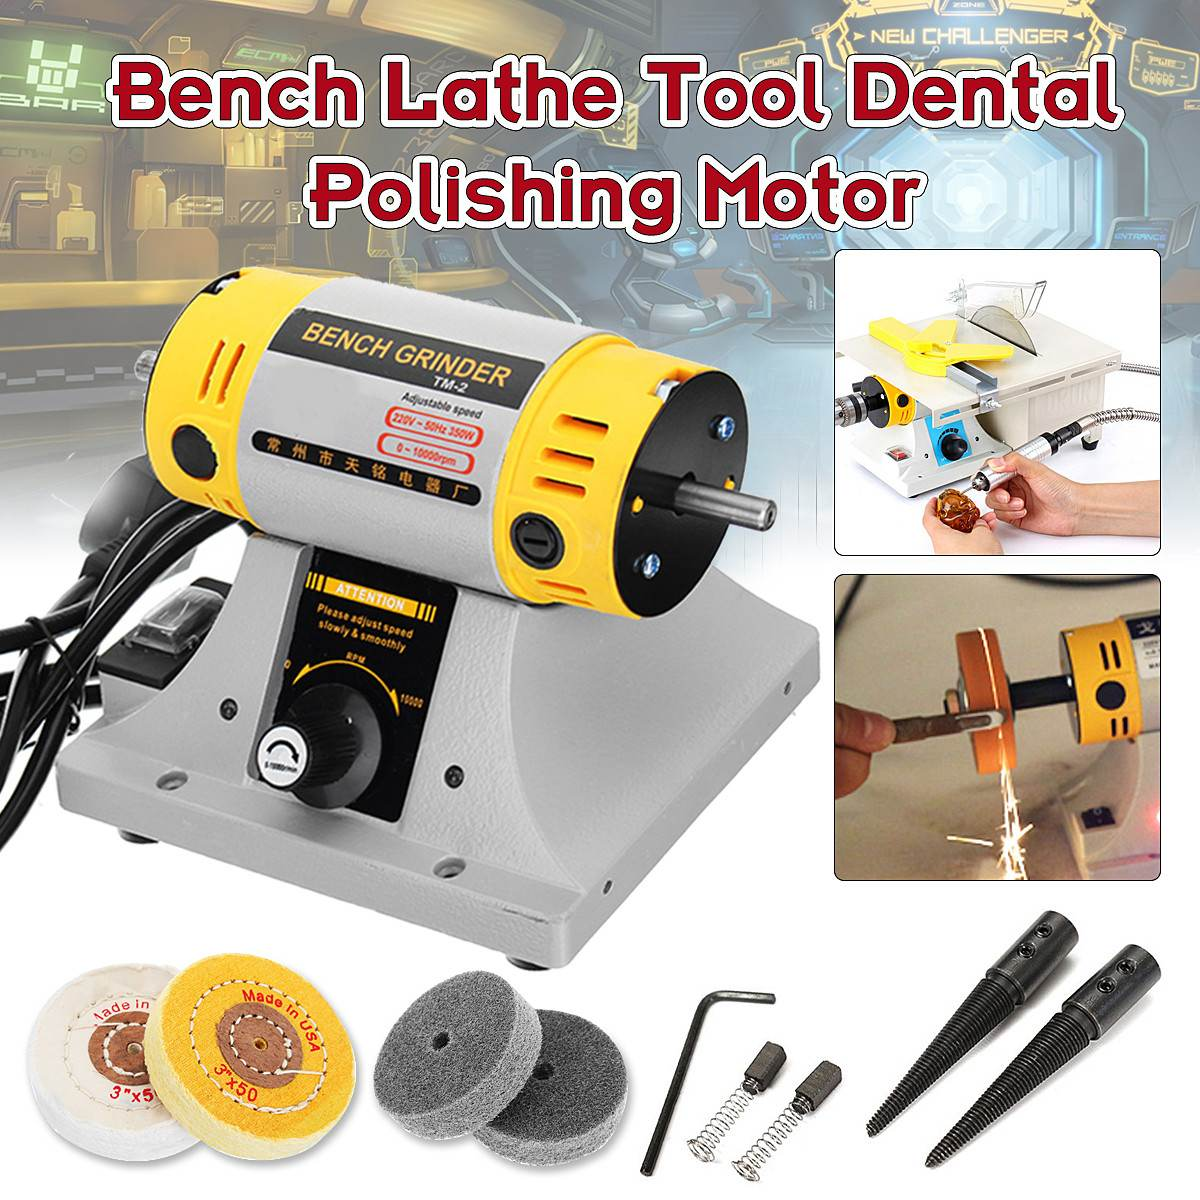 350W 220V Multi-purpose Mini Benchs Grinder Polishing Machine Kit For Jewelry Dental Jewelry Motor Lathe Benchs Grinder Kit Set350W 220V Multi-purpose Mini Benchs Grinder Polishing Machine Kit For Jewelry Dental Jewelry Motor Lathe Benchs Grinder Kit Set